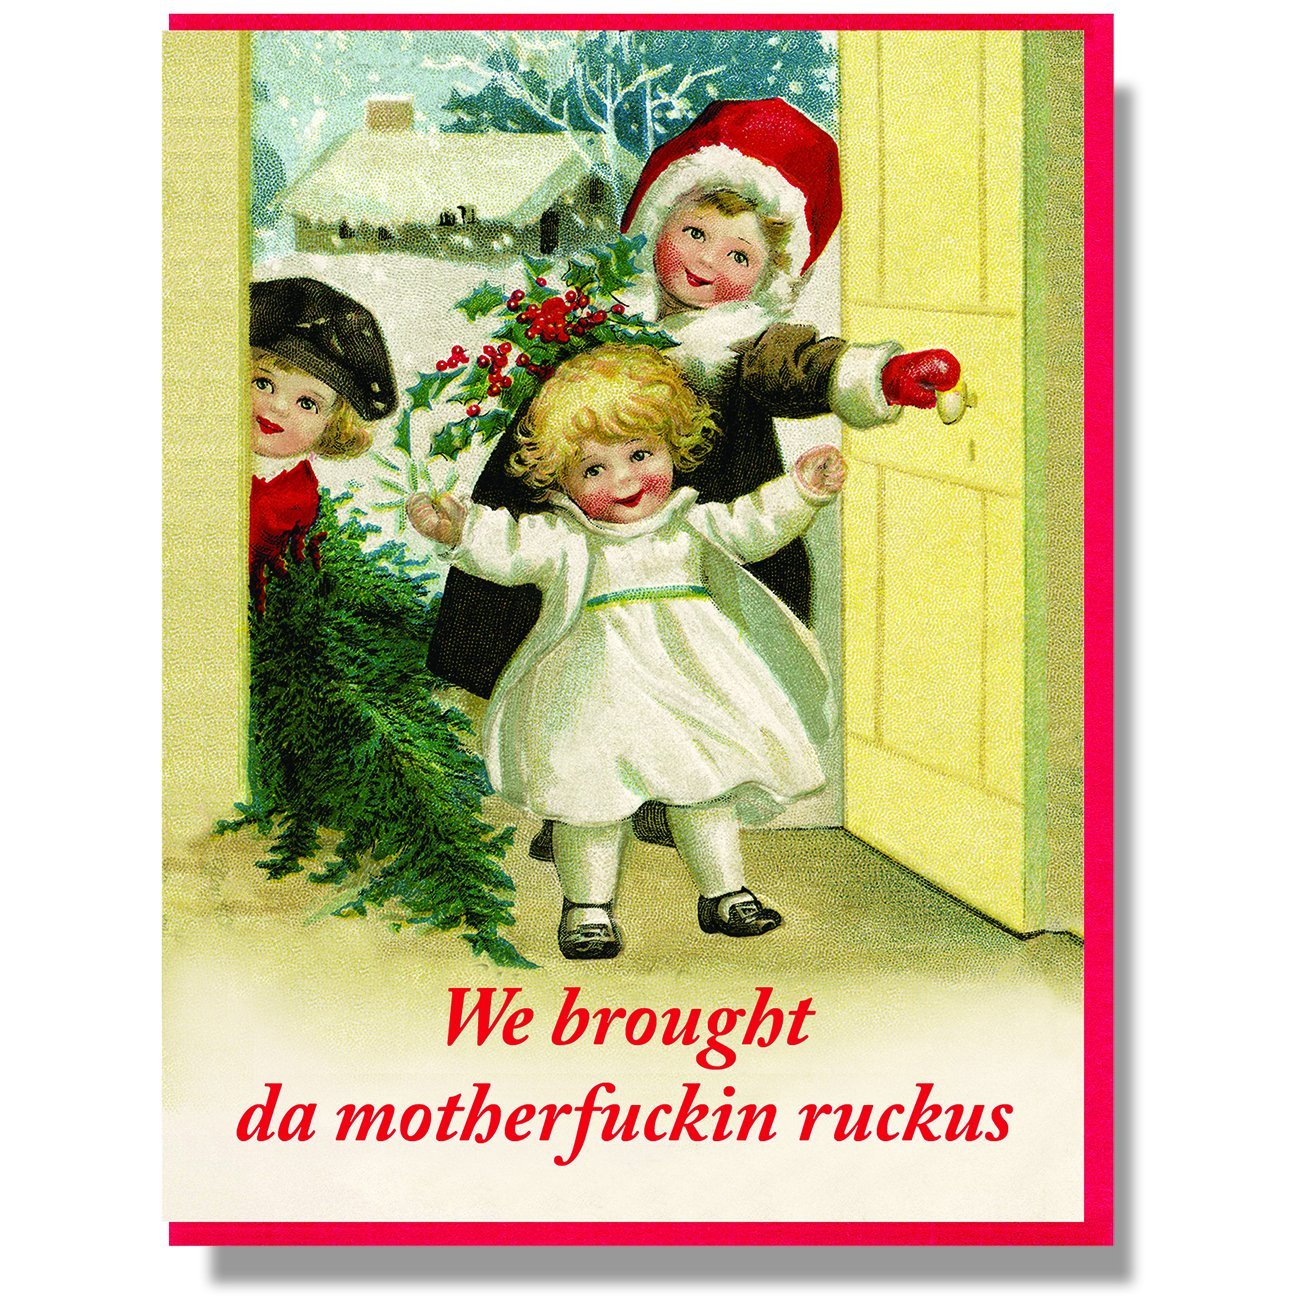 "Smitten Kitten: ""We brought da motherfuckin ruckus"" Boxed Holiday Cards"